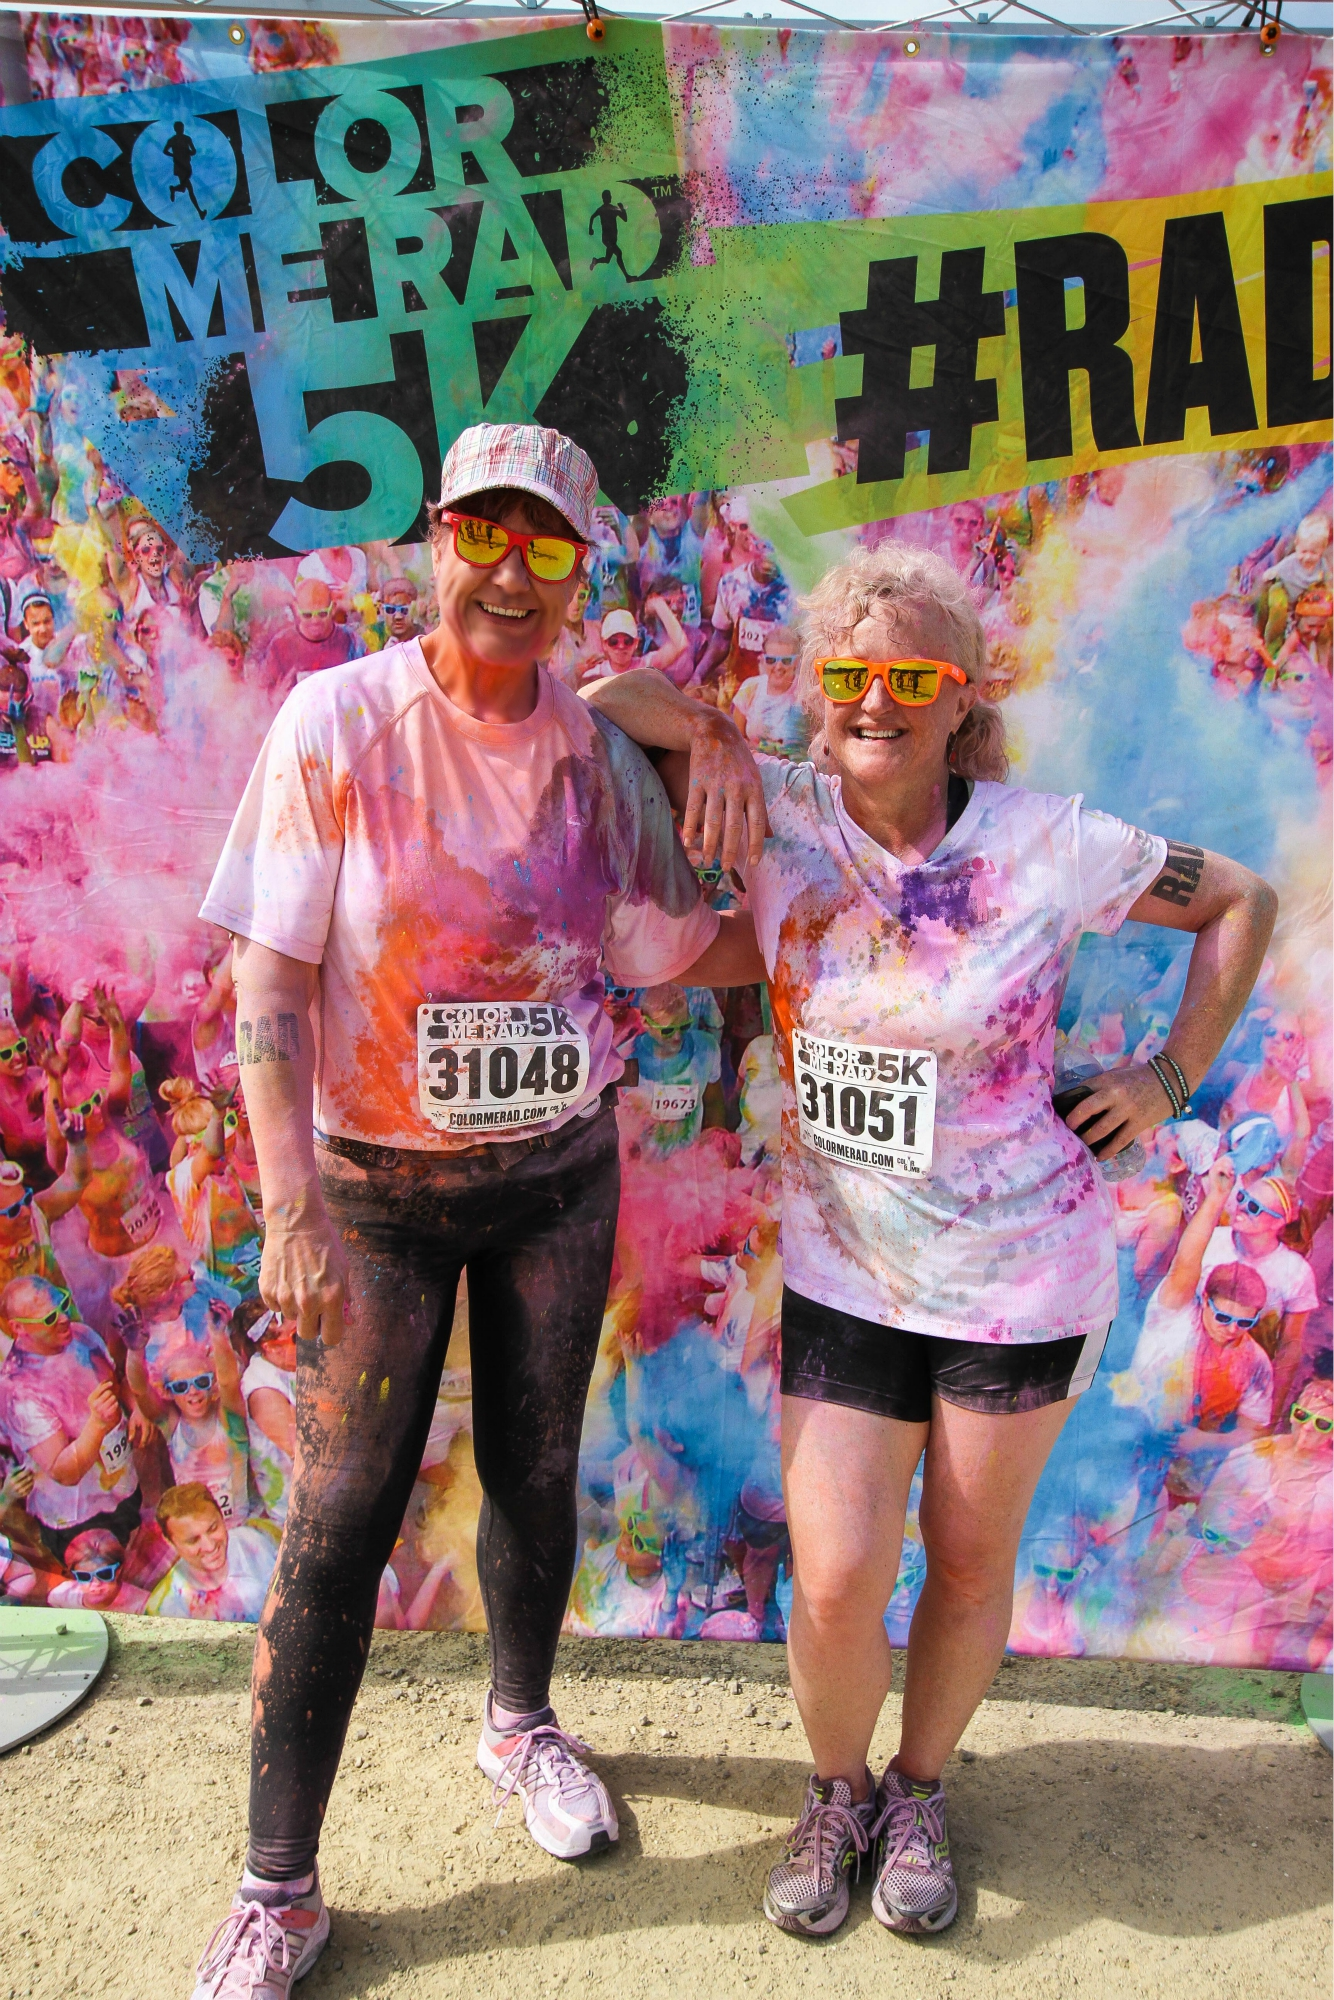 Lori-Christine-official2-ColorMeRad.jpg